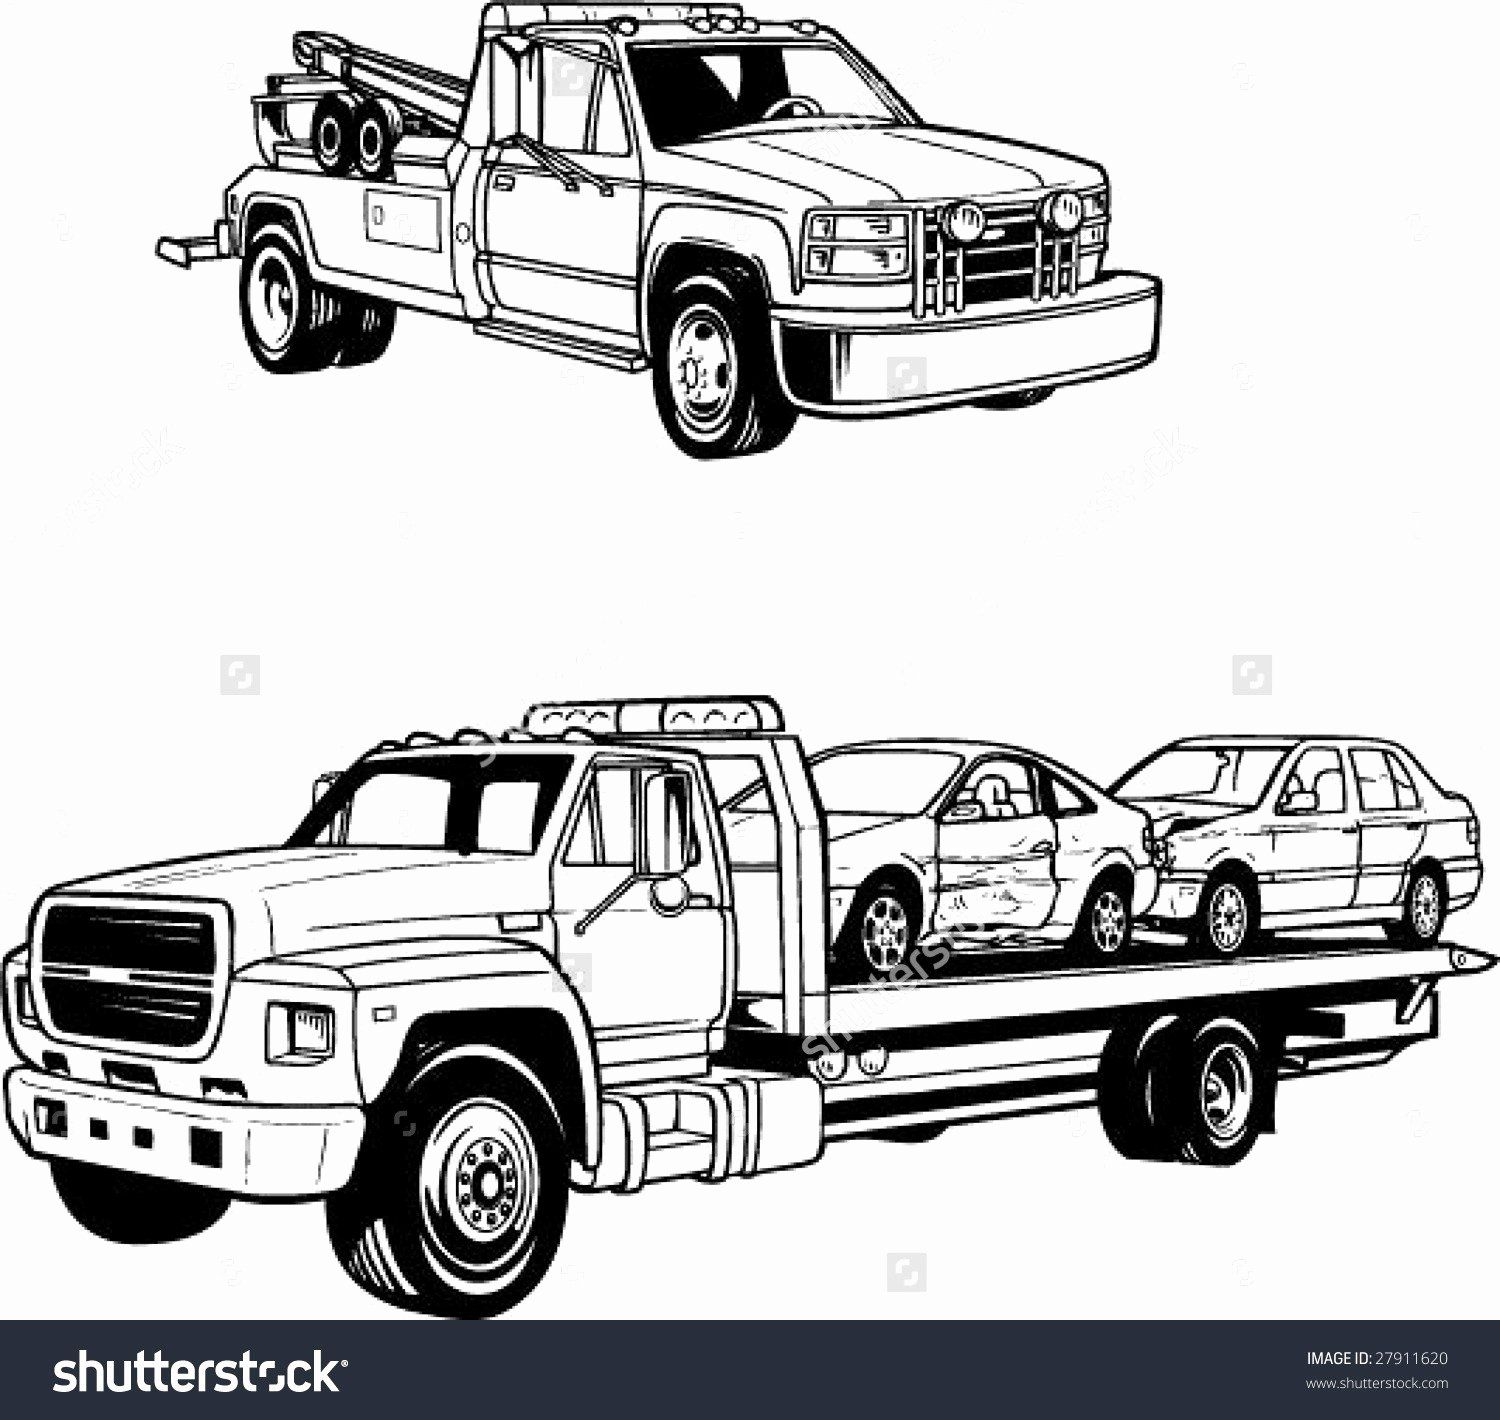 Truck Coloring Pages For Adults Truck Coloring Pages Tow Truck